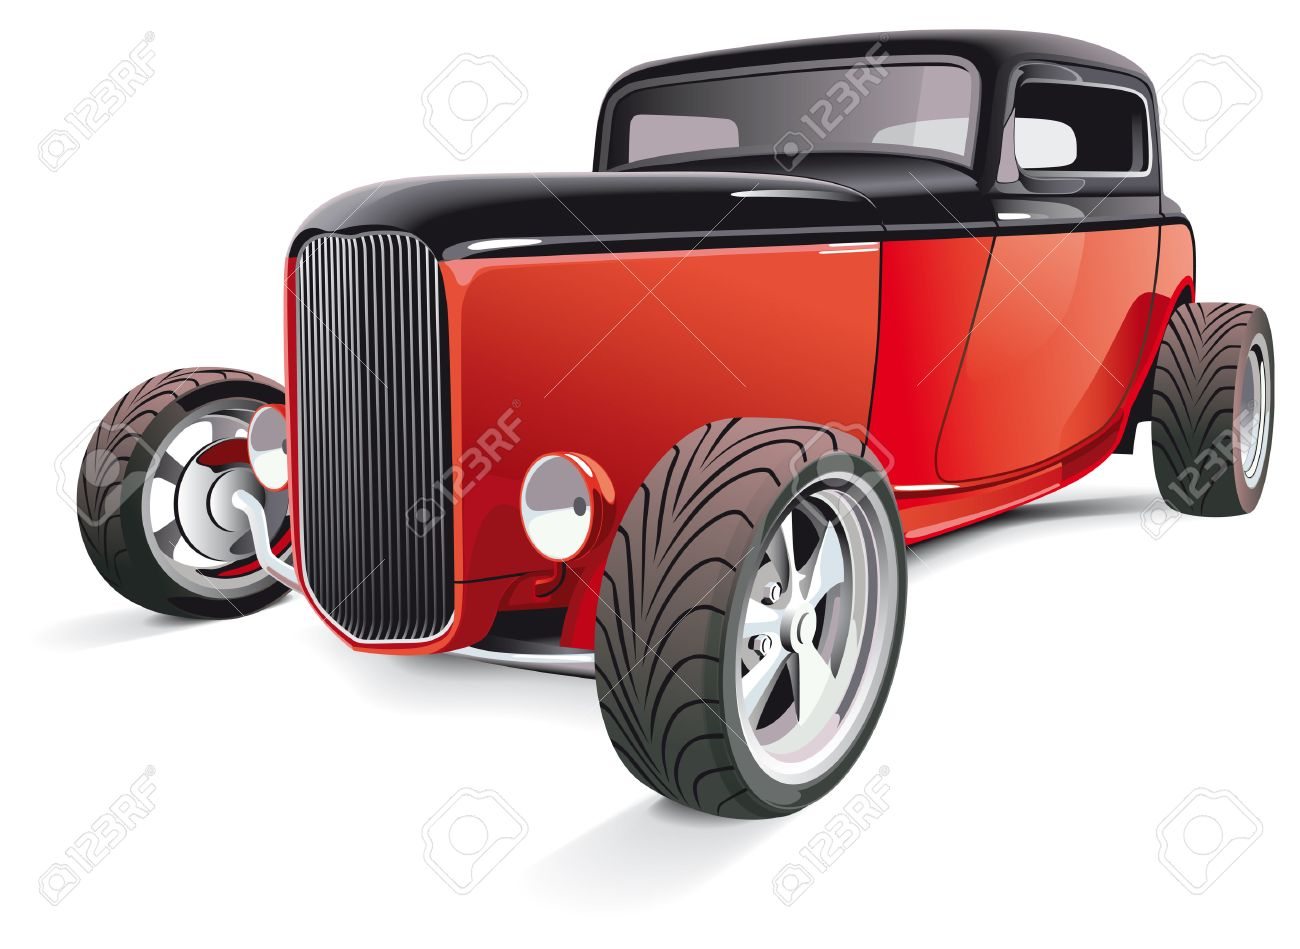 Vectorial image of red hot rod, isolated on white background. Contains gradients and blends. Stock Vector - 8643910